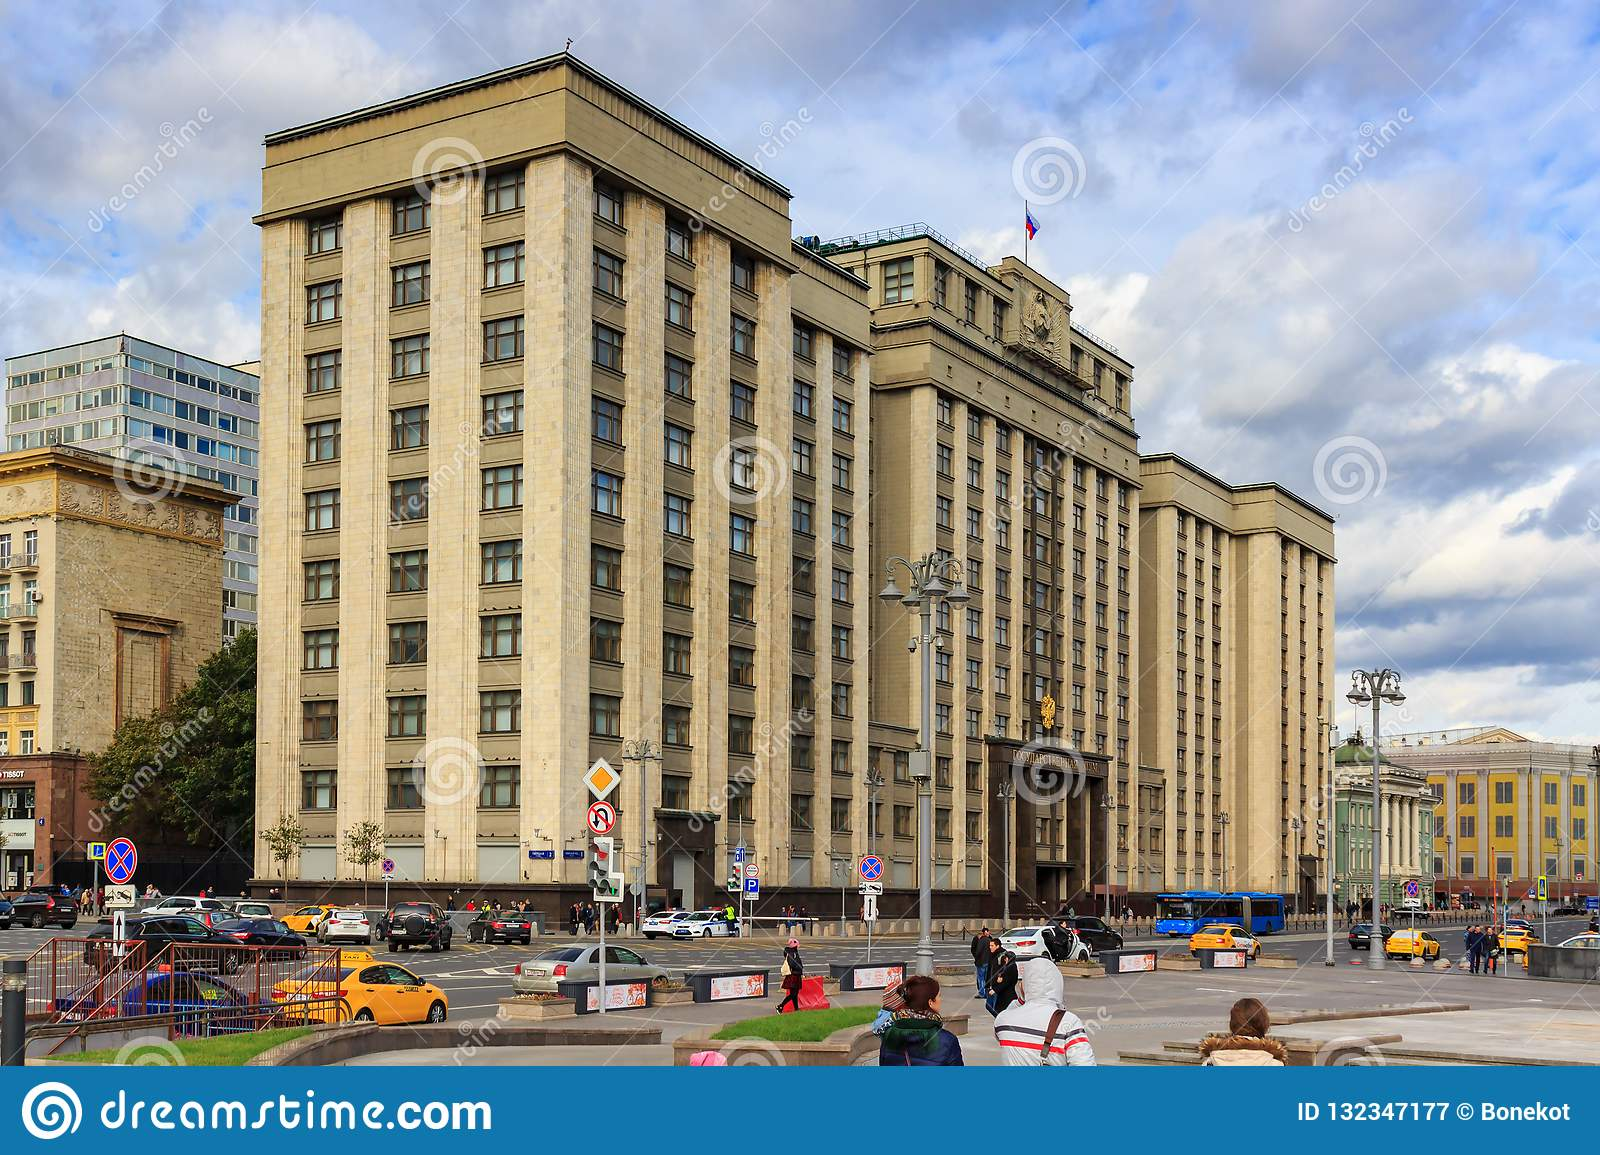 Moscow, Russia - September 30, 2018: Building of State Duma of Russian Federation in Moscow at cloudy autumn day. View from the